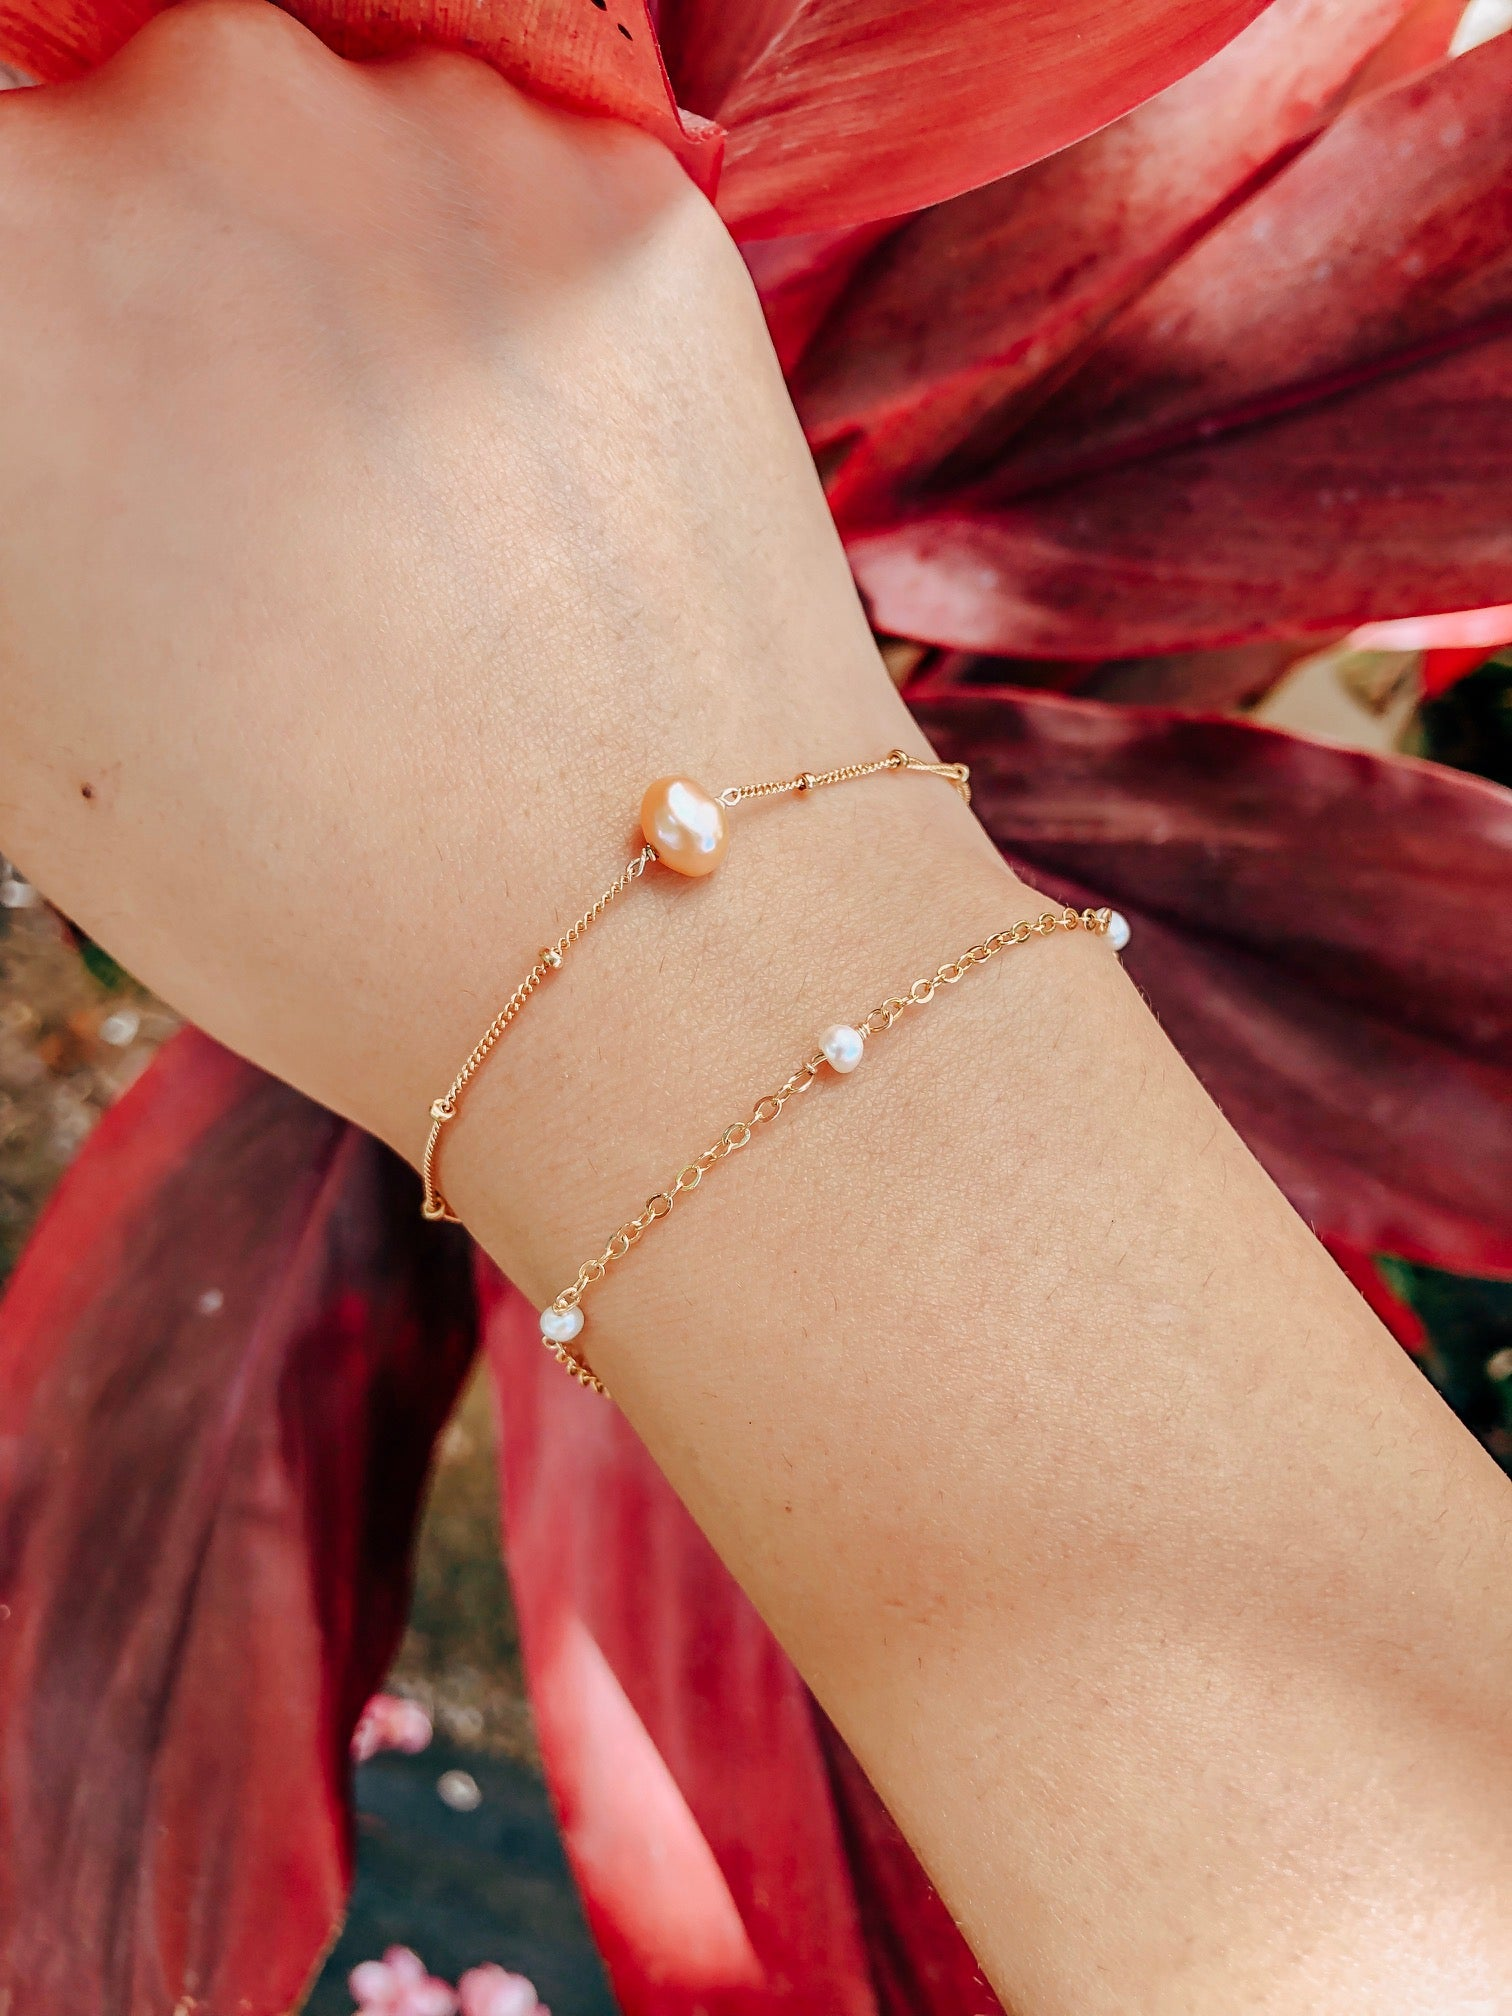 Limited time offer *Bundle* Solitarie Pink Pearl Bracelet + White freshwater pearl Bracelet